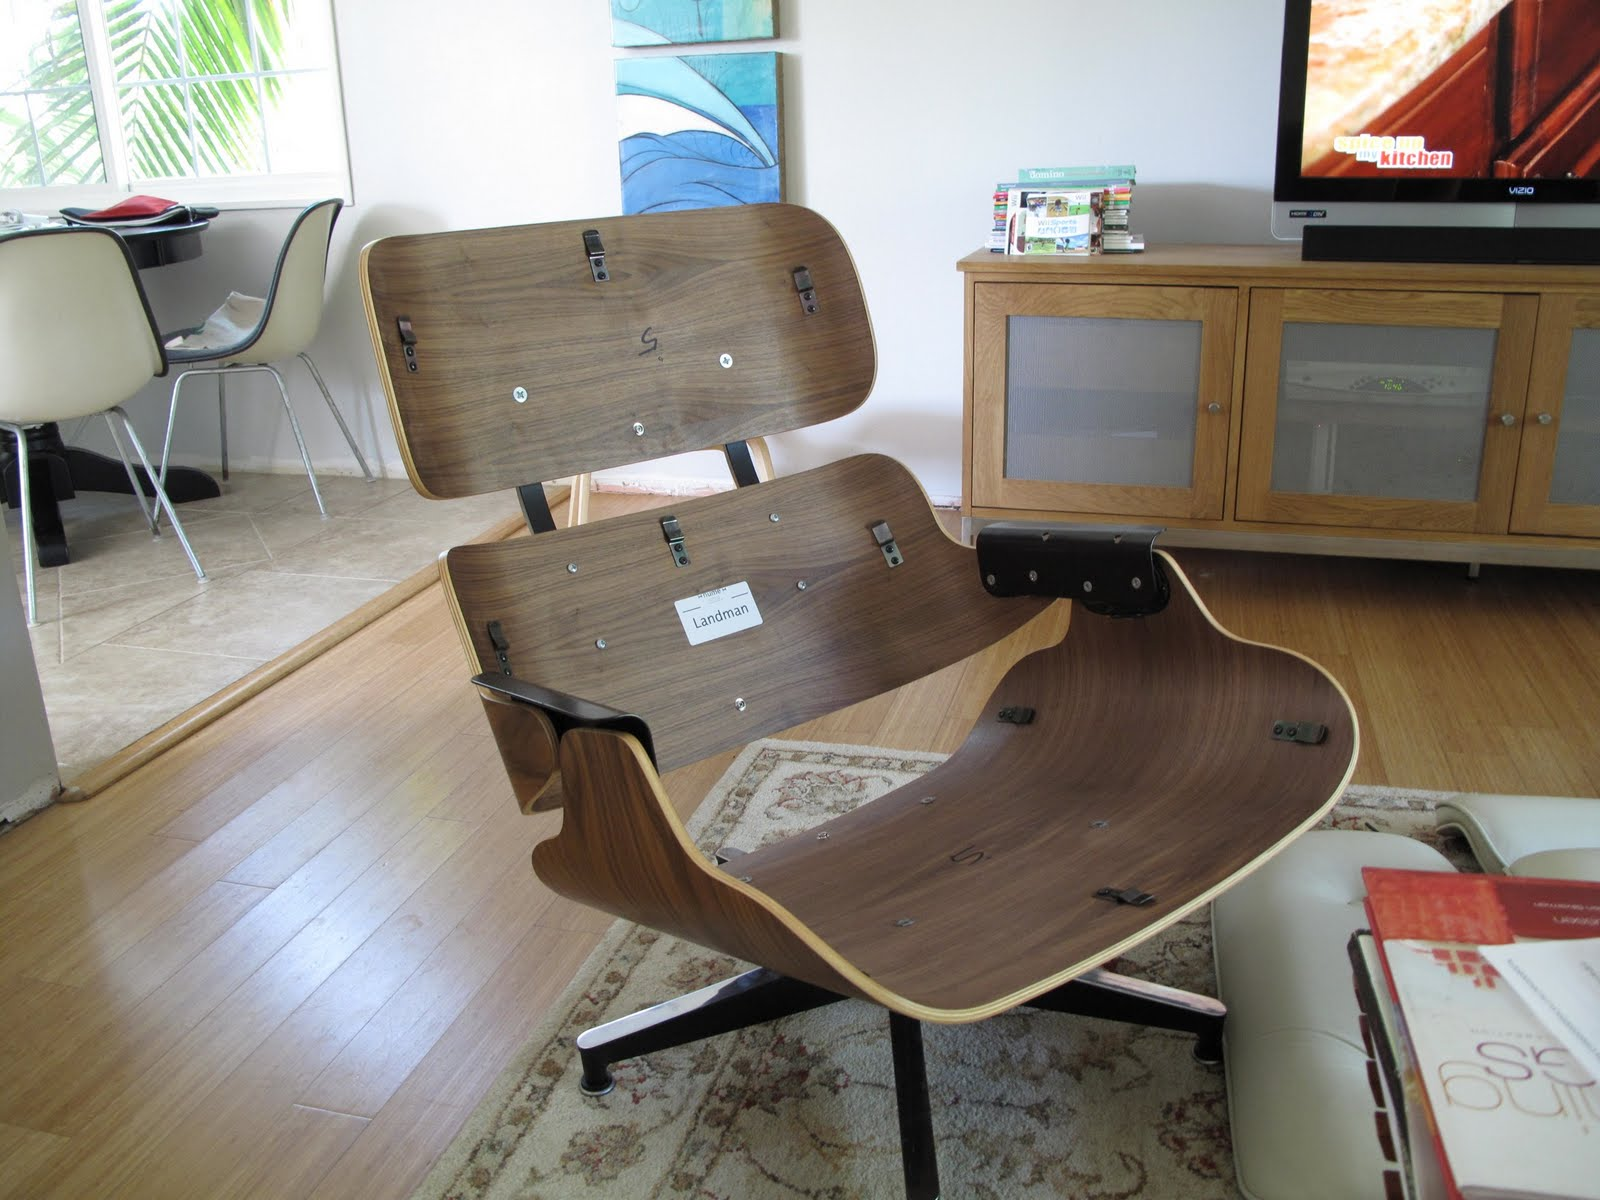 Eames Chair Repair Eames Lounge Chair And Ottoman Replacement Parts Replacement